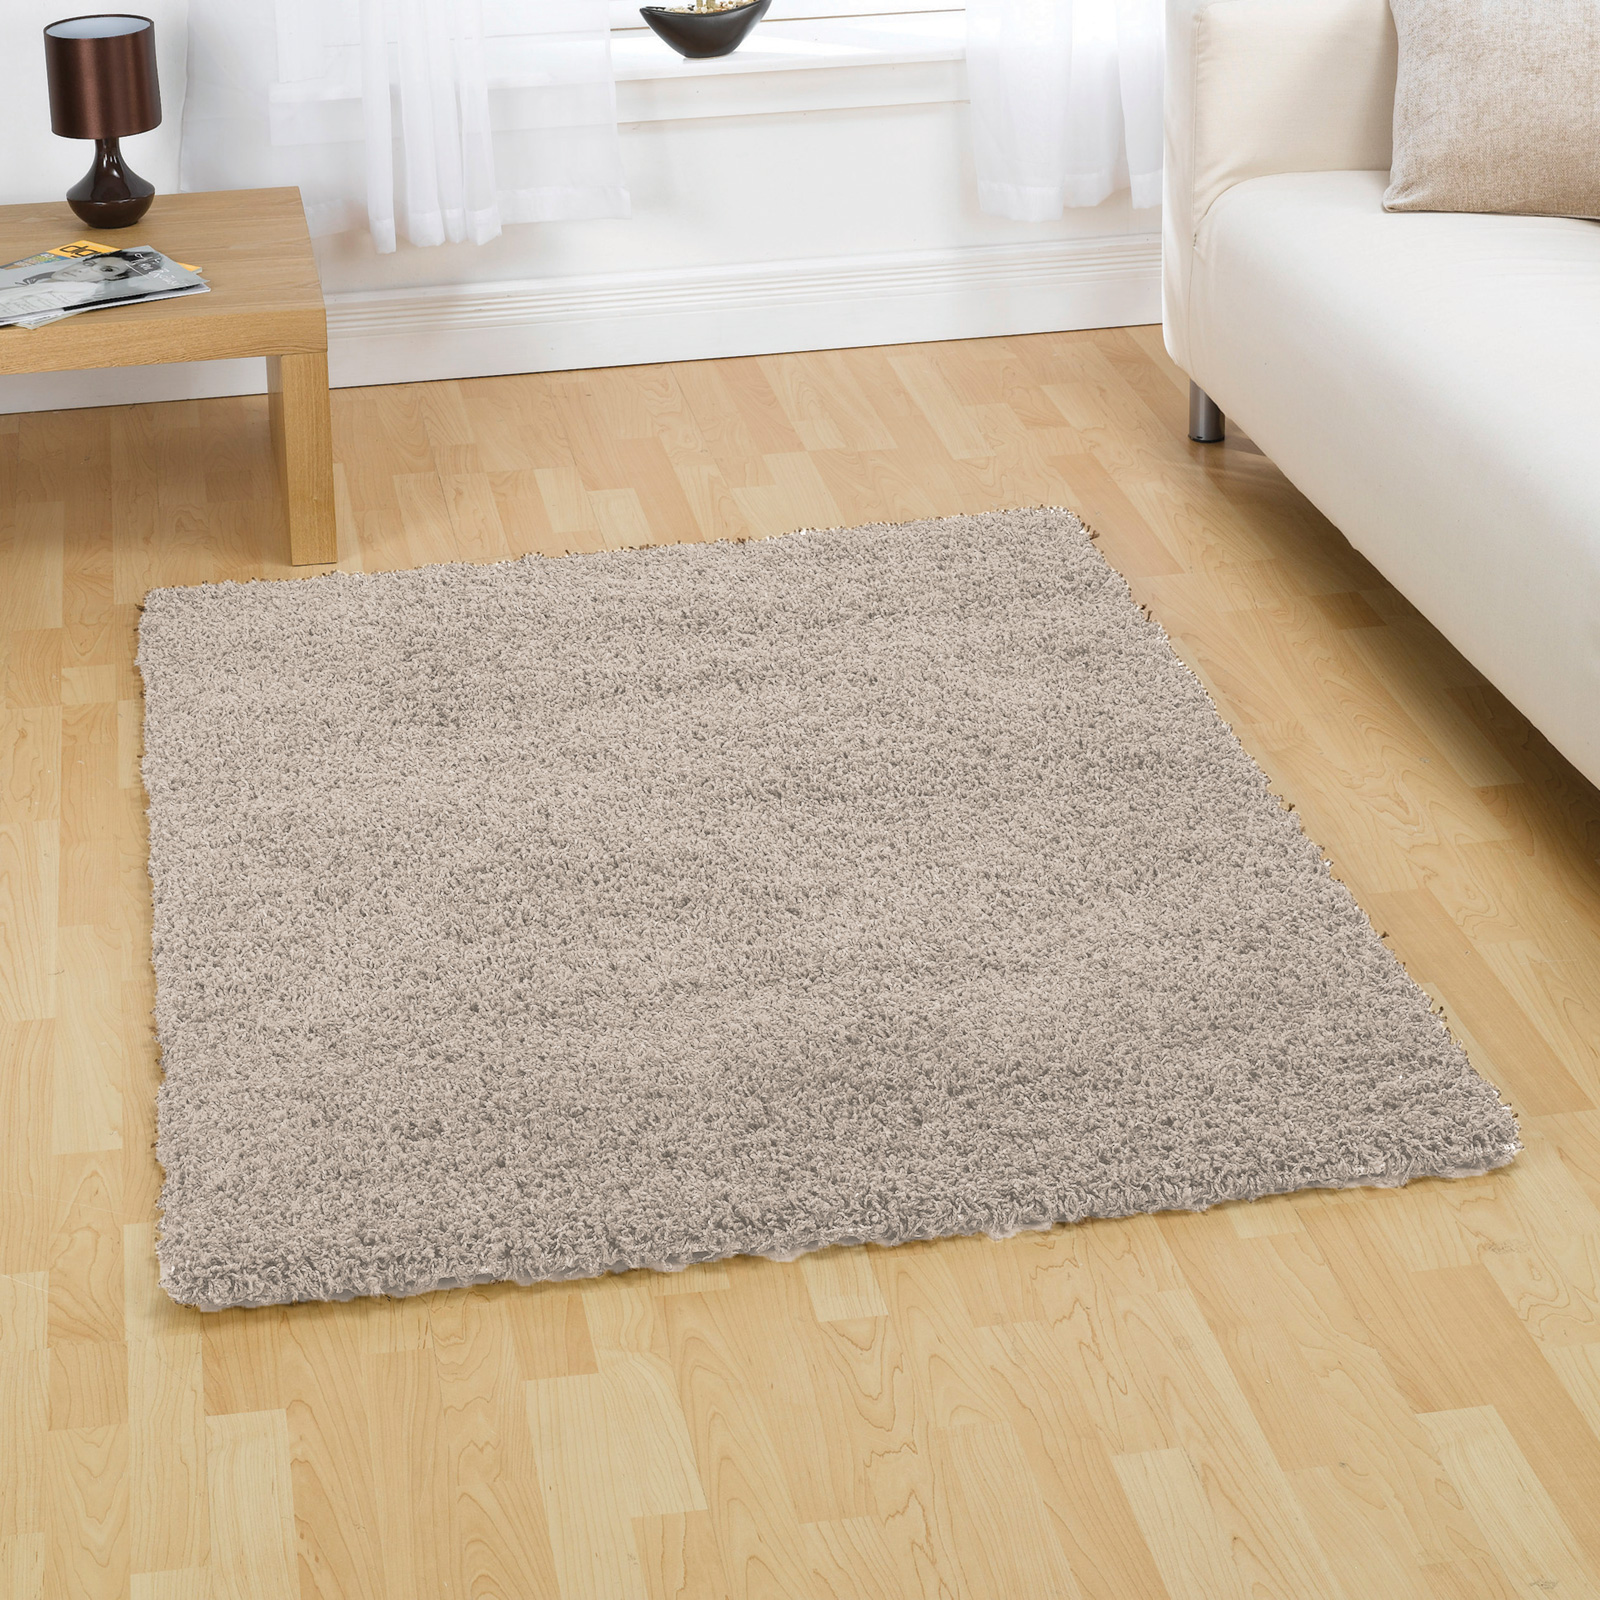 plain shaggy carpet rug with 5cm deep pile soft warm